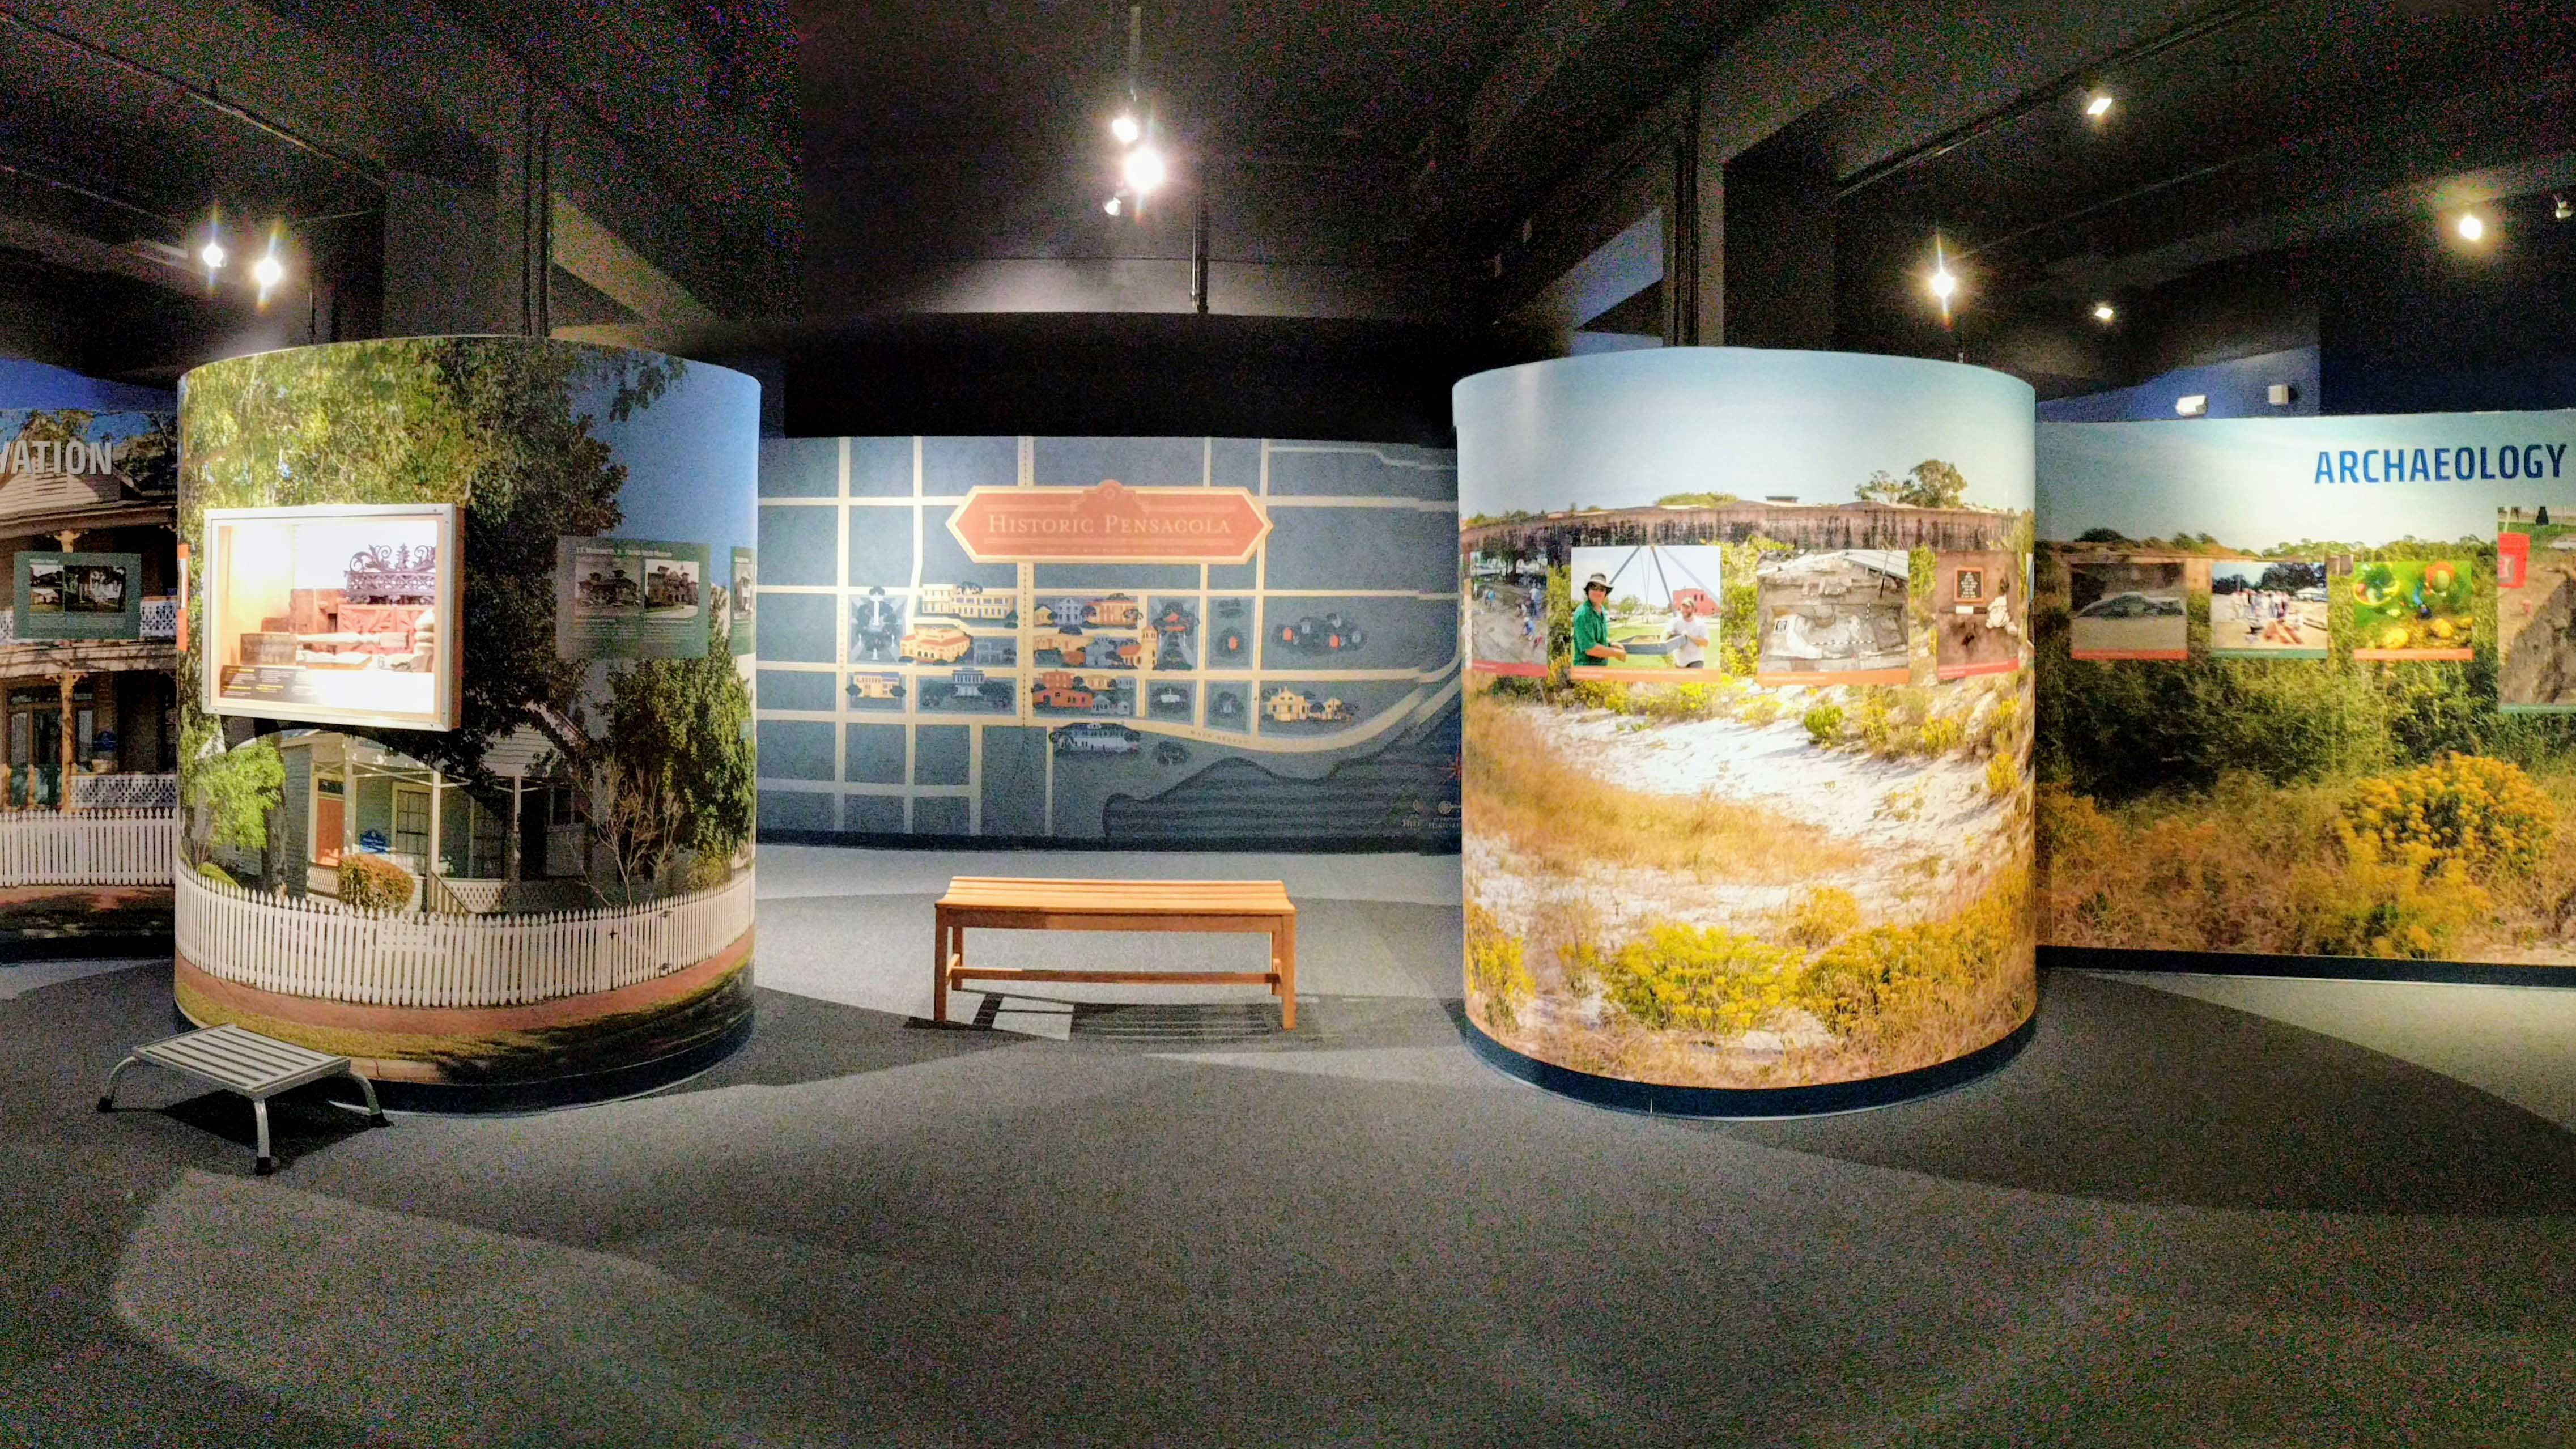 Museum and exhibition graphics for UWF Historic Trust Fund - signgeek Wall Wraps